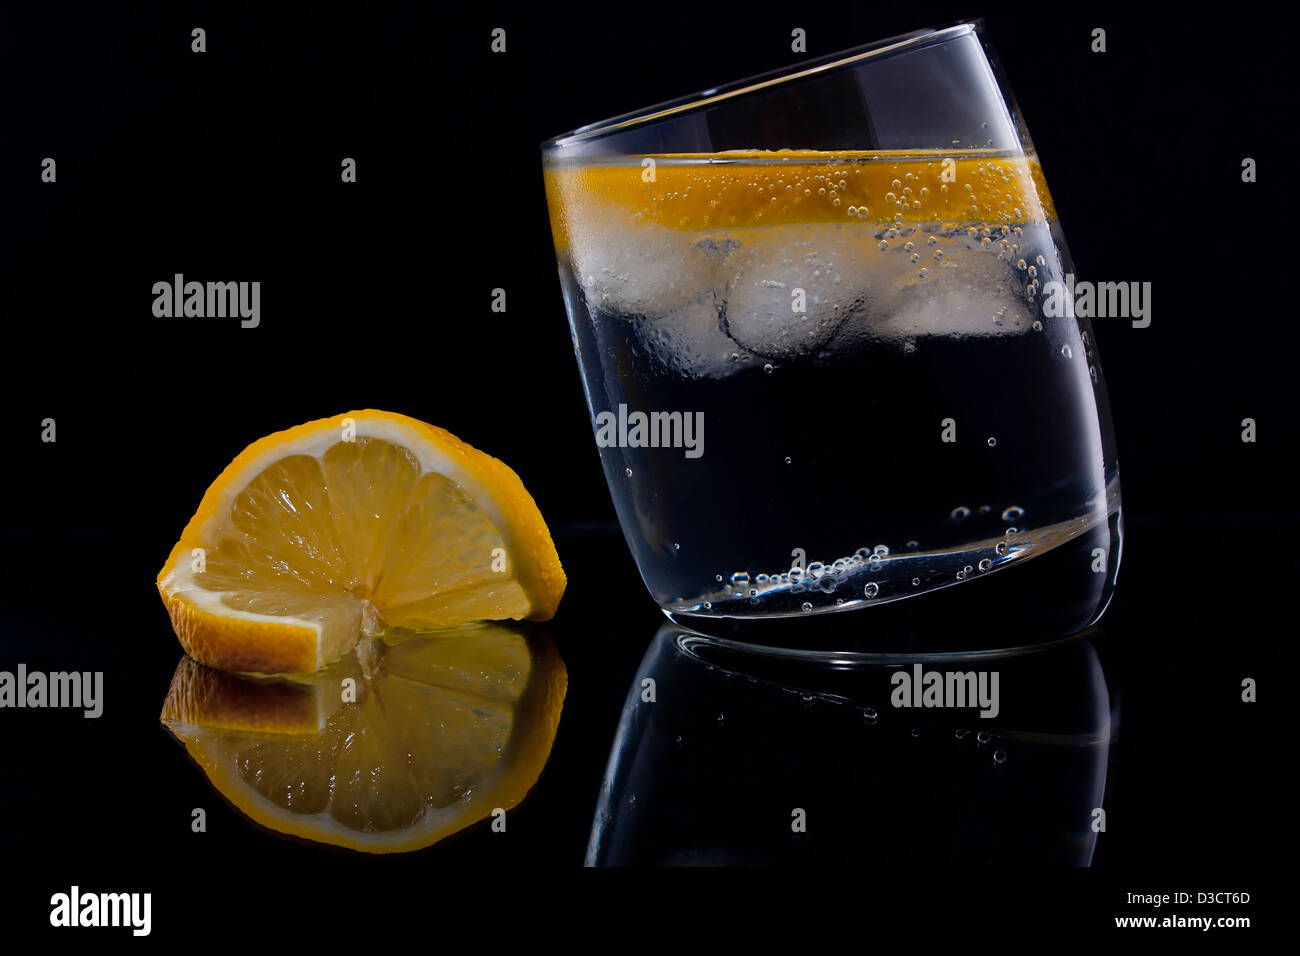 Gin and tonic or vodka and tonic with a slice of lemon over black - Stock Image